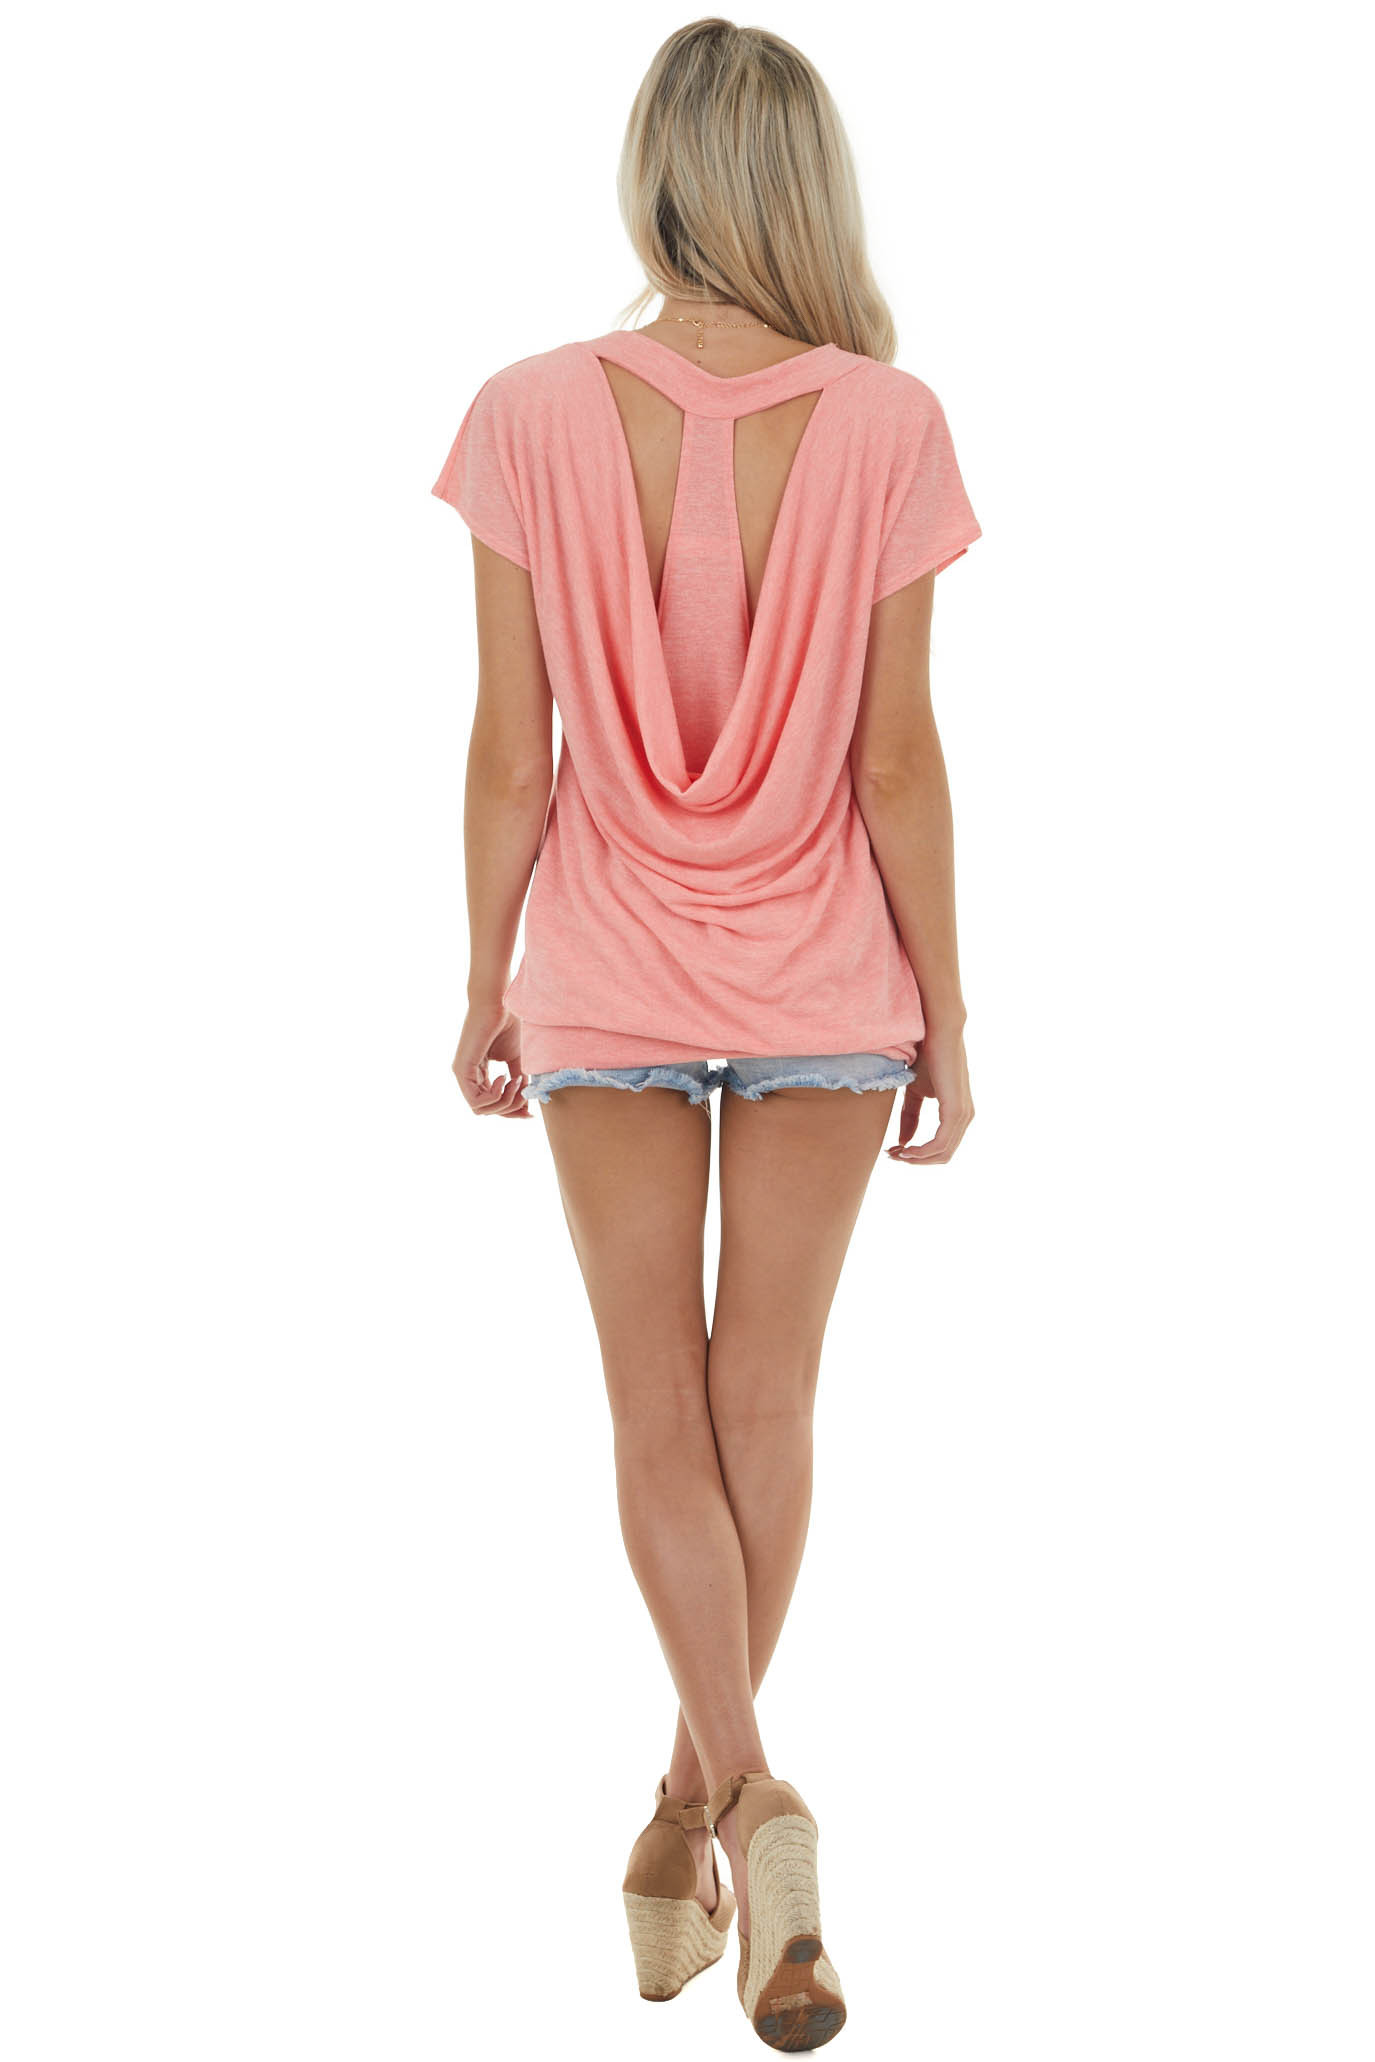 Heathered Coral Cut Out Back Draping Tunic Top